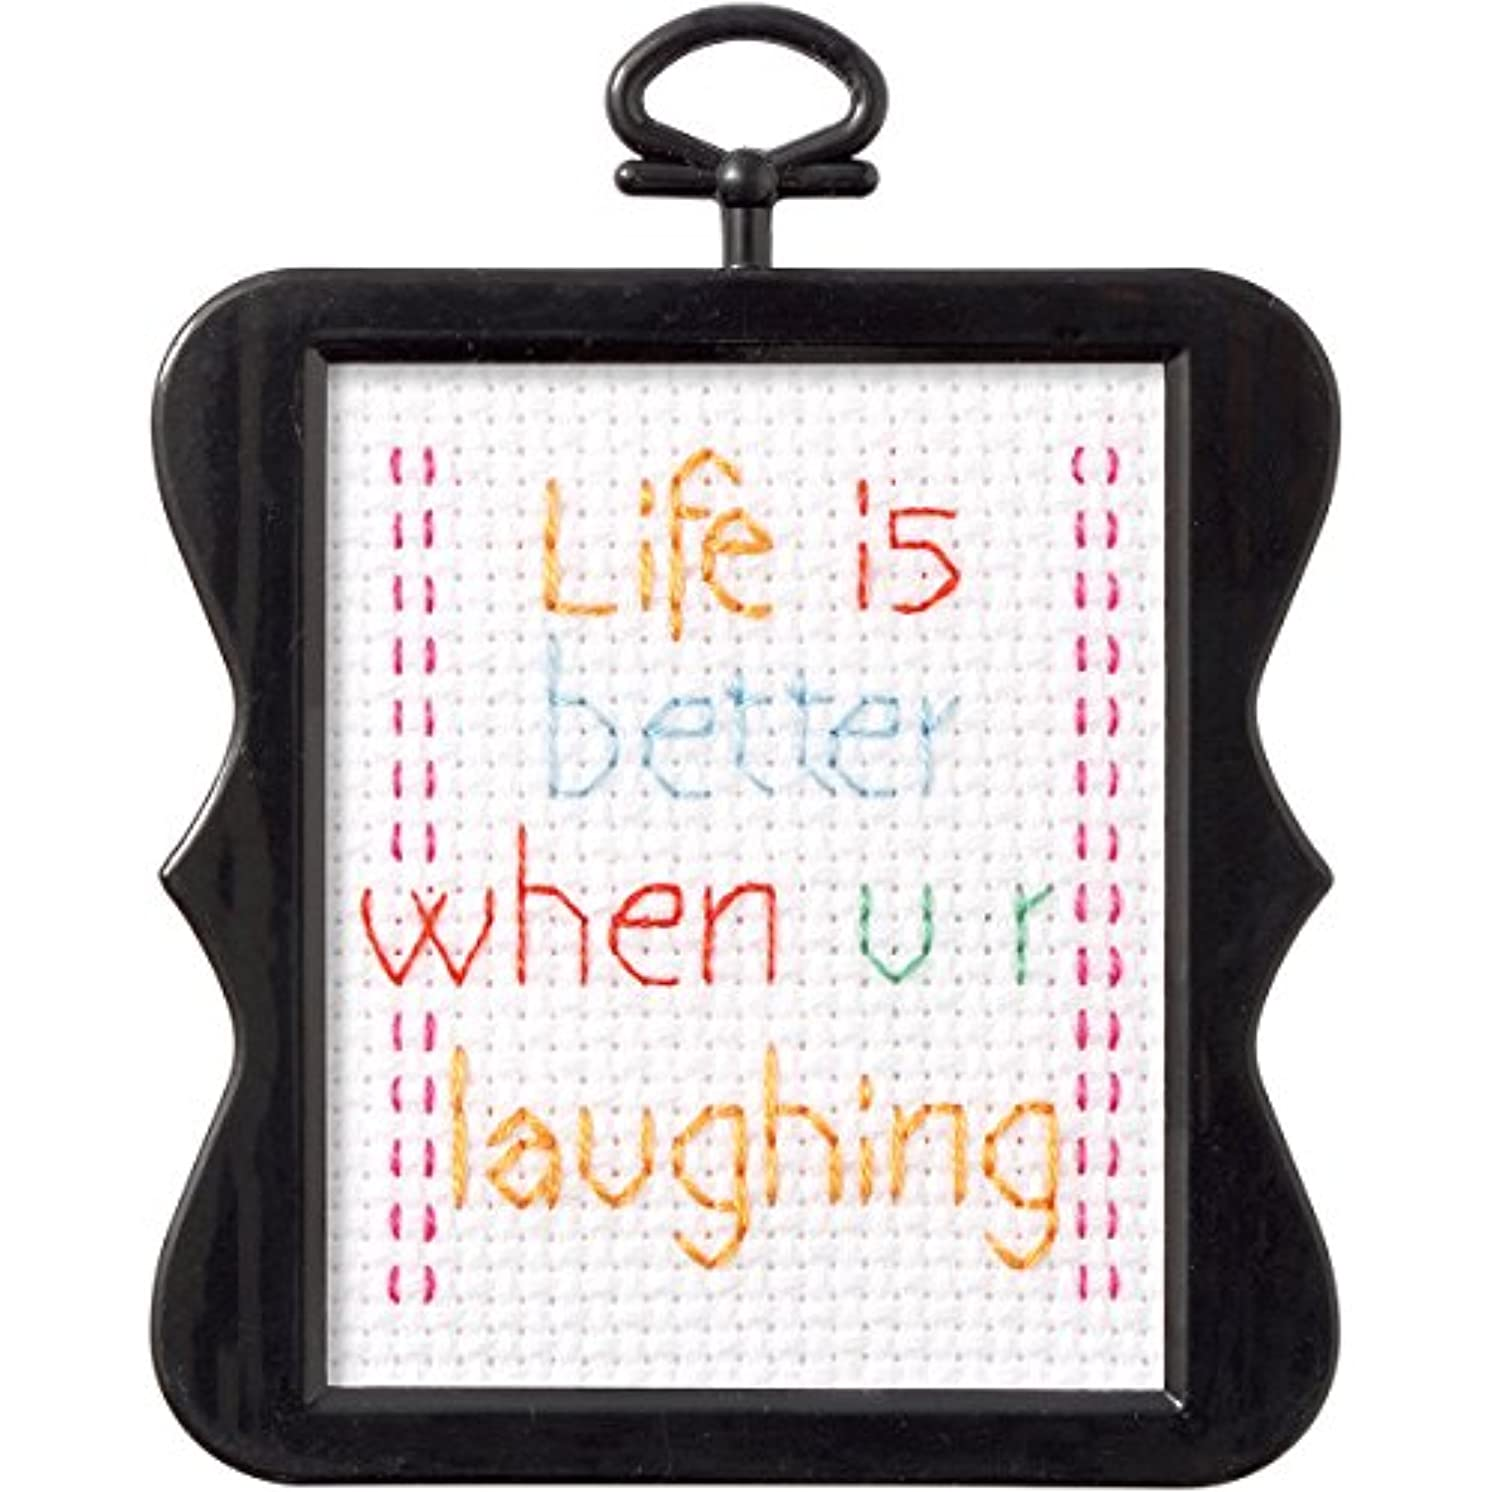 Plaid Bucilla Counted Cross Stitch Kit - 1 Complete Kit - Variety of Designs - Includes Frame (Life is Better)